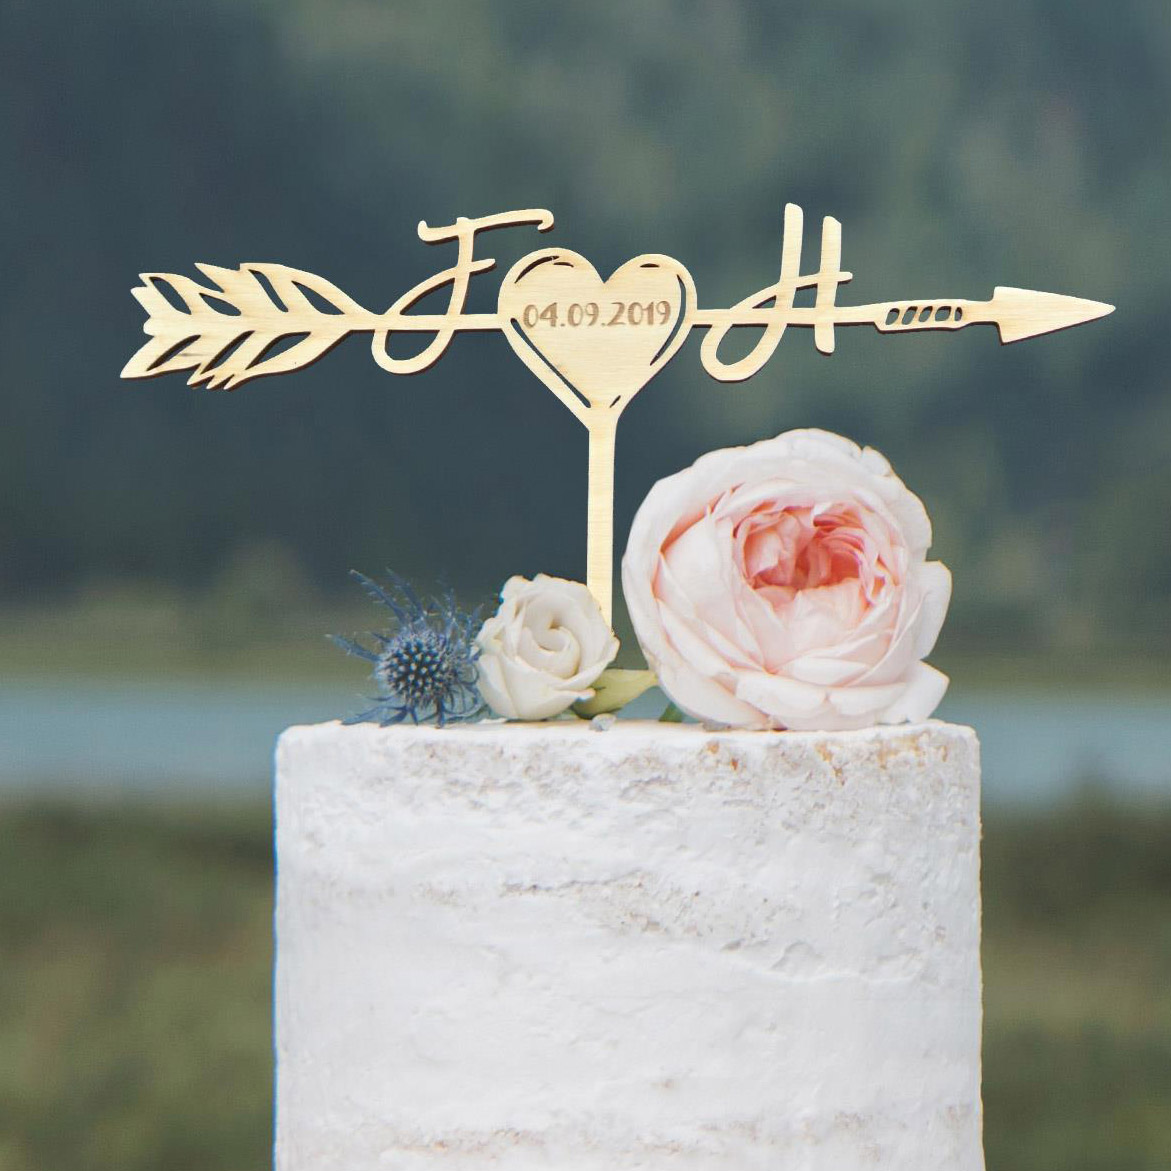 Rustic Monogram Wedding Cake Topper with Engraved Date by Thistle and Lace